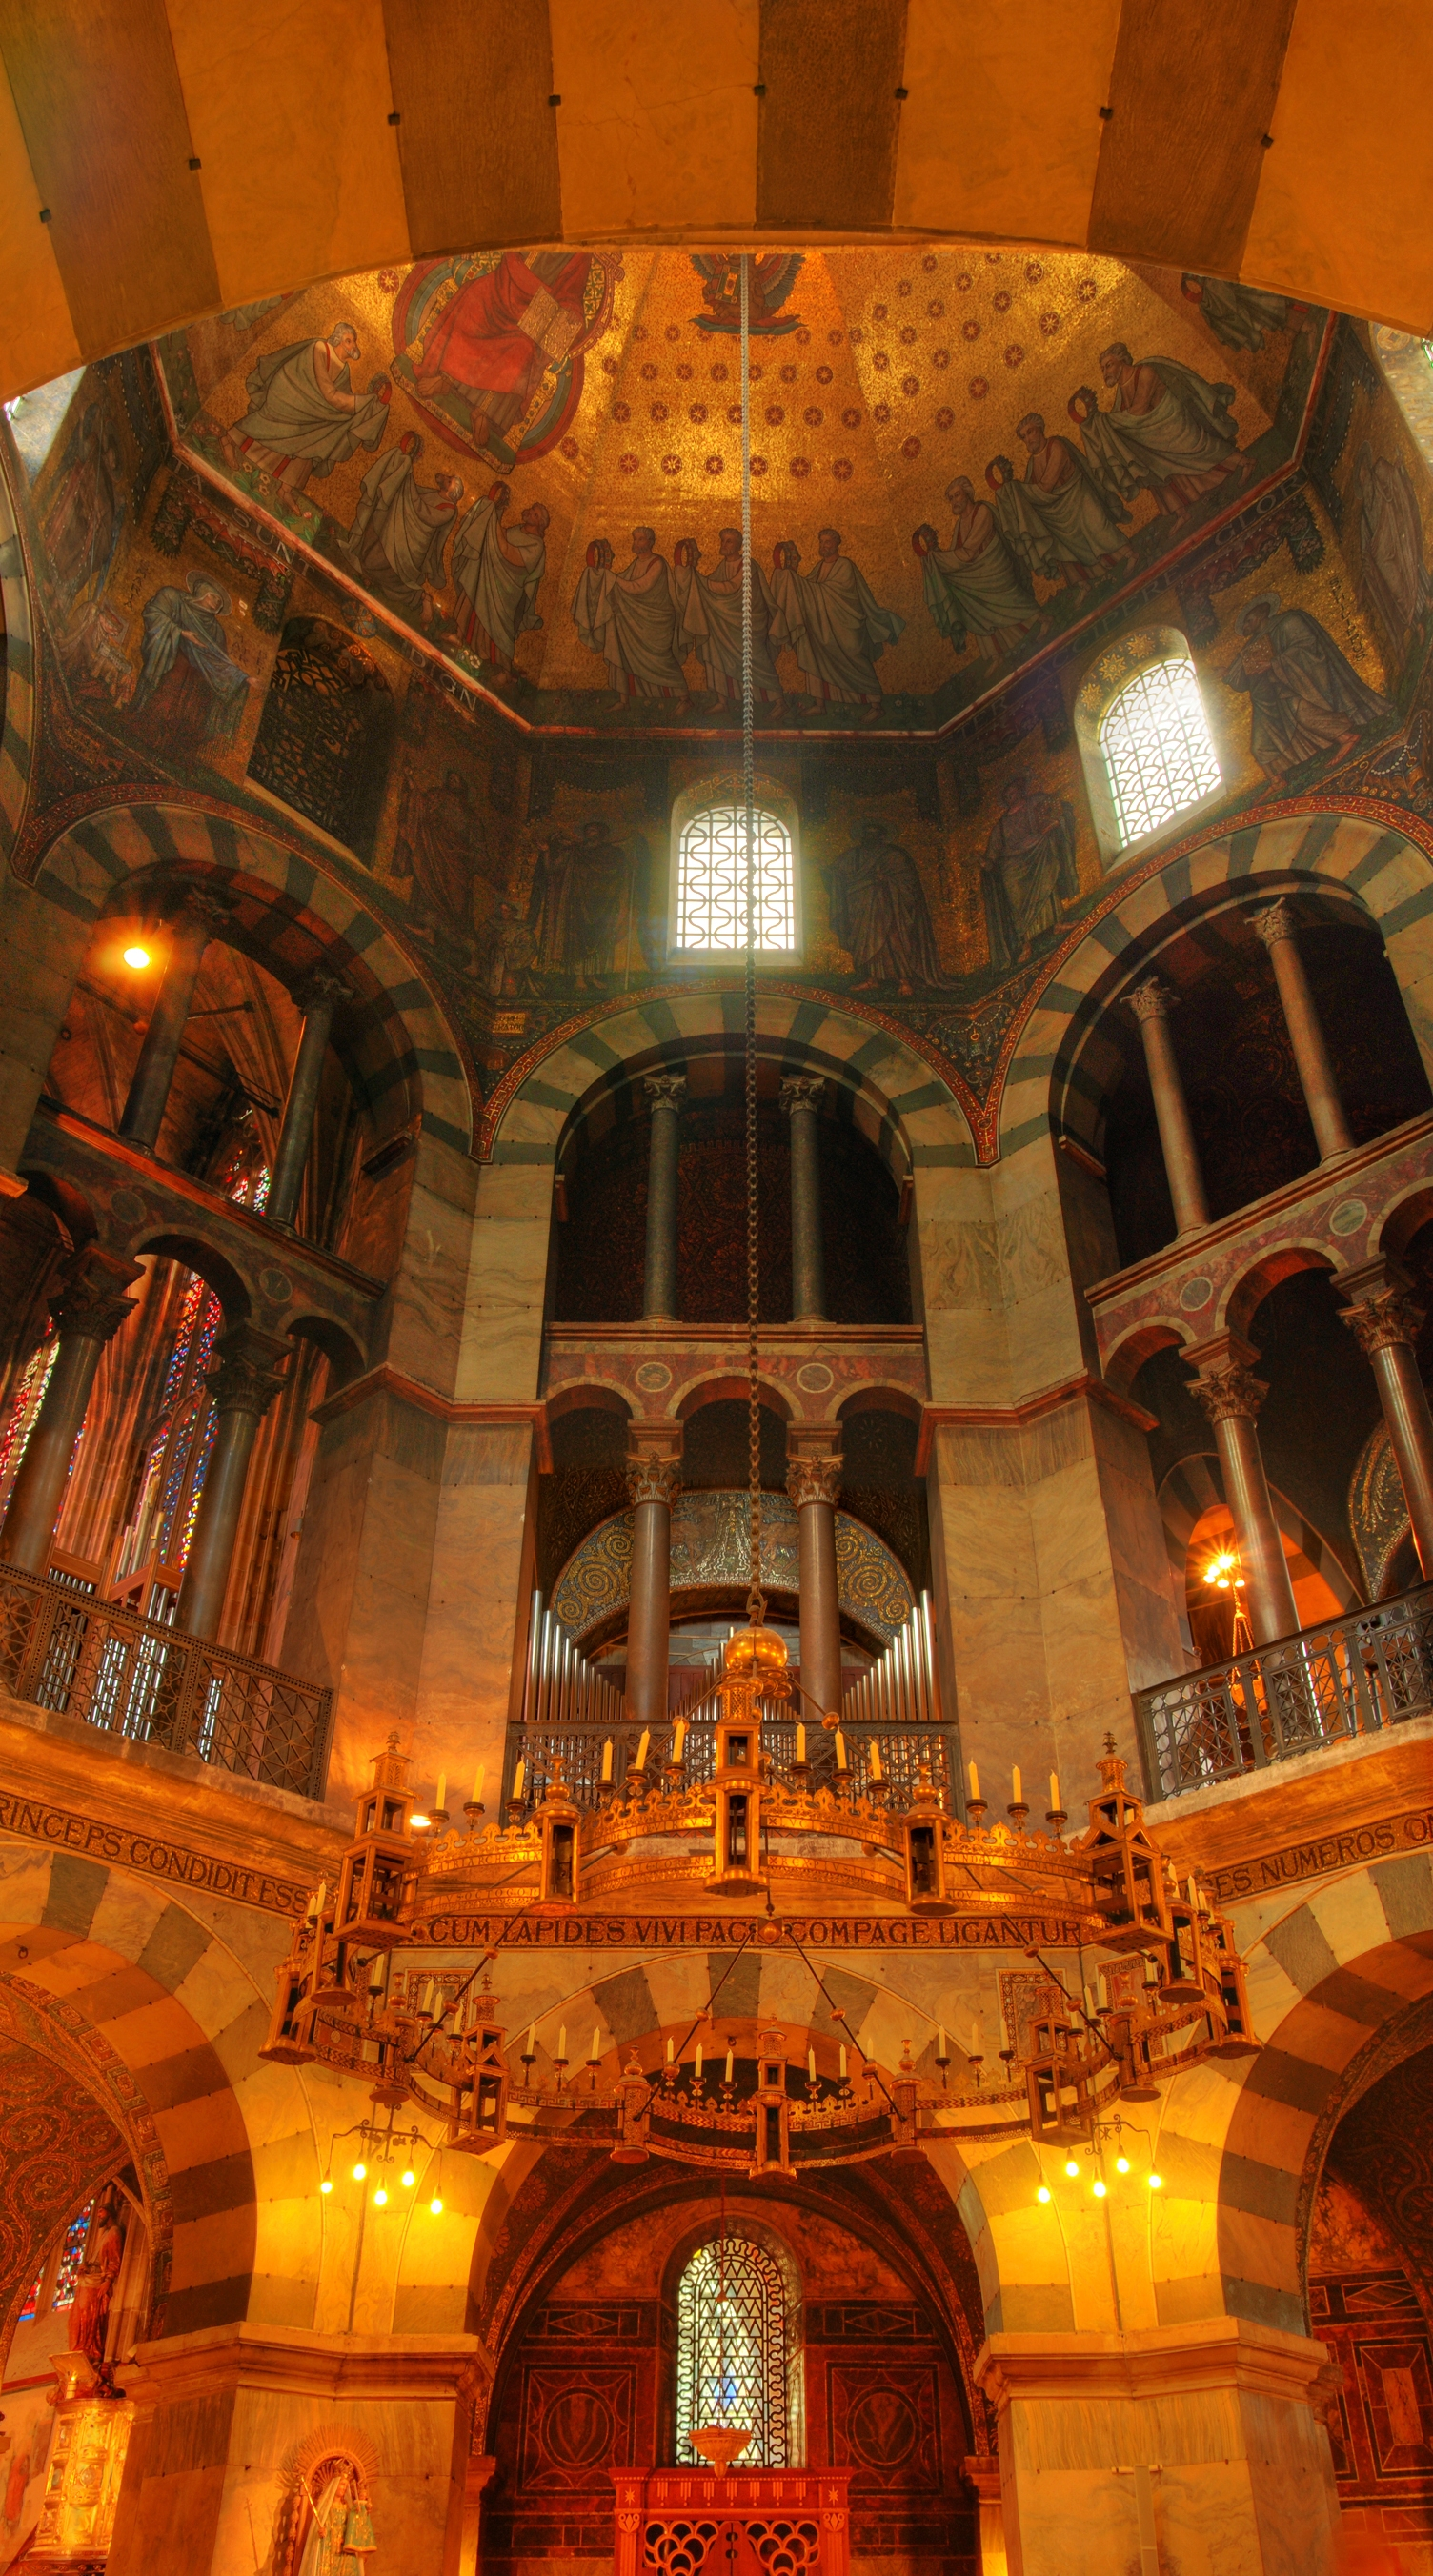 Octagonal chapel in the Aachen cathedral